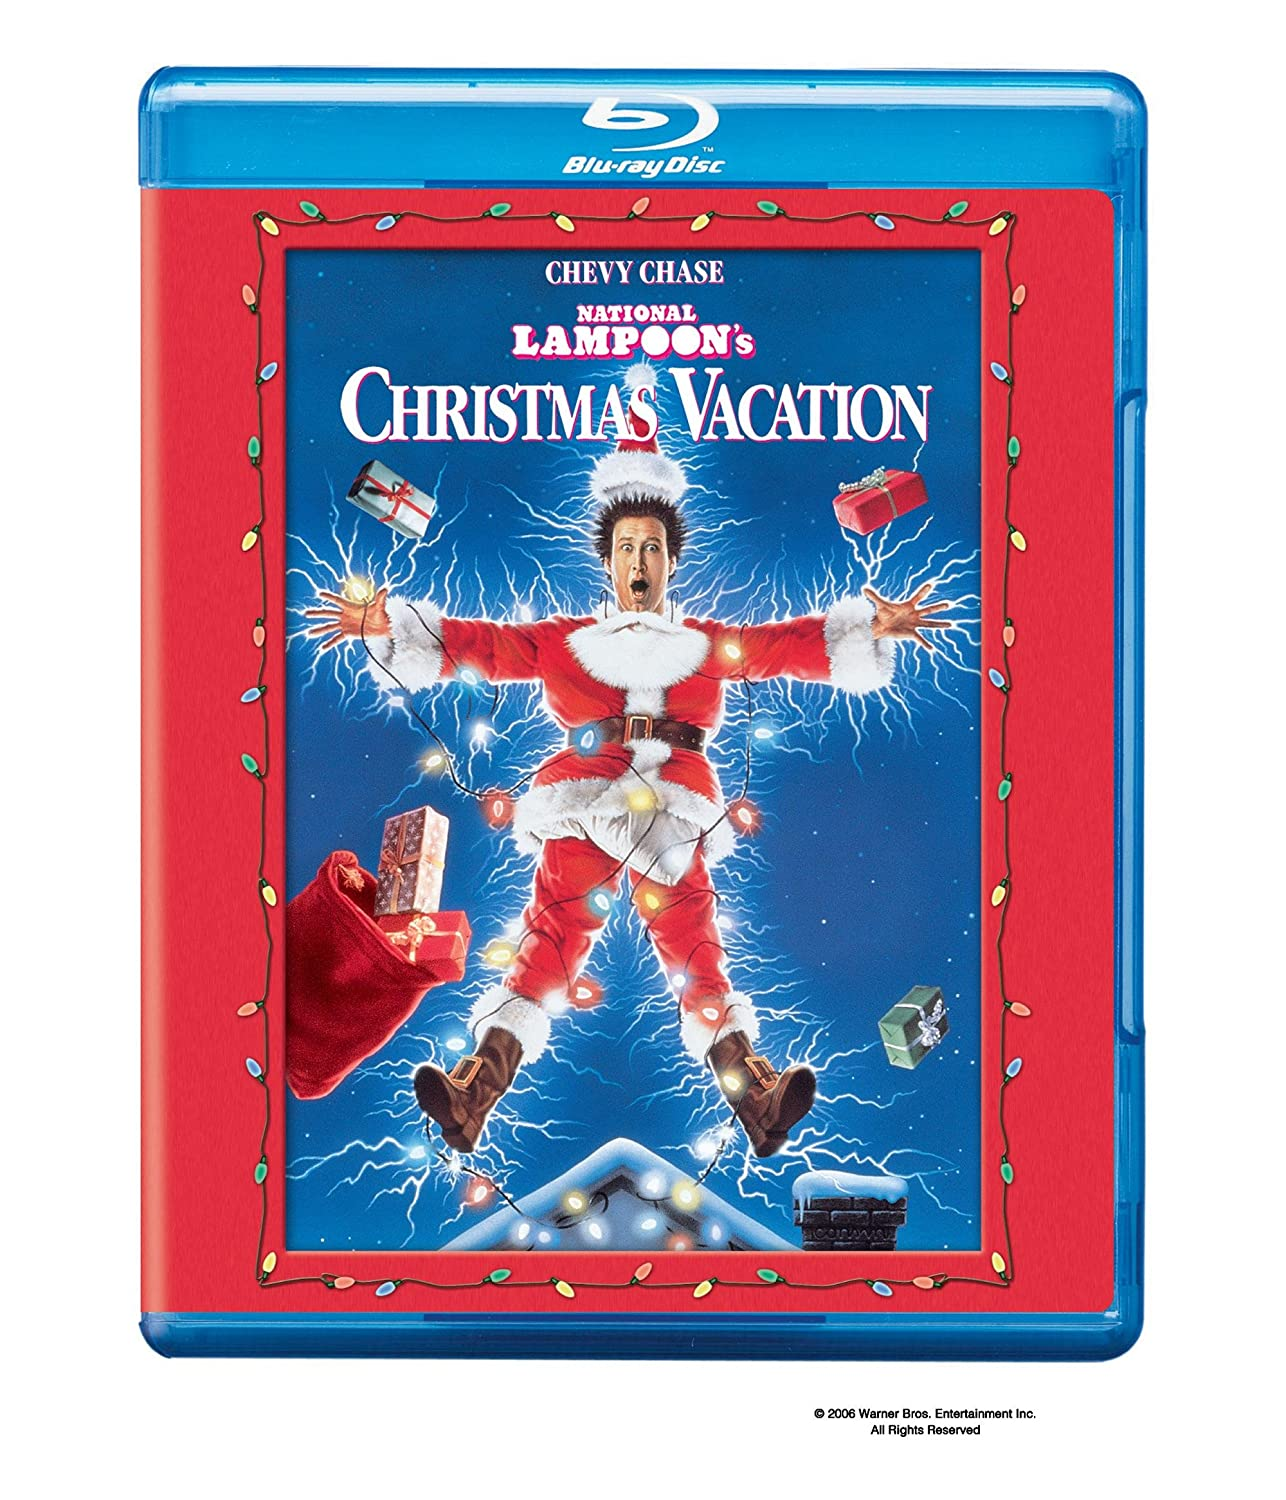 National Lampoon's Christmas Vacation [Blu-ray] Chevy Chase Beverly D' angelo Juliette Lewis Randy Quaid